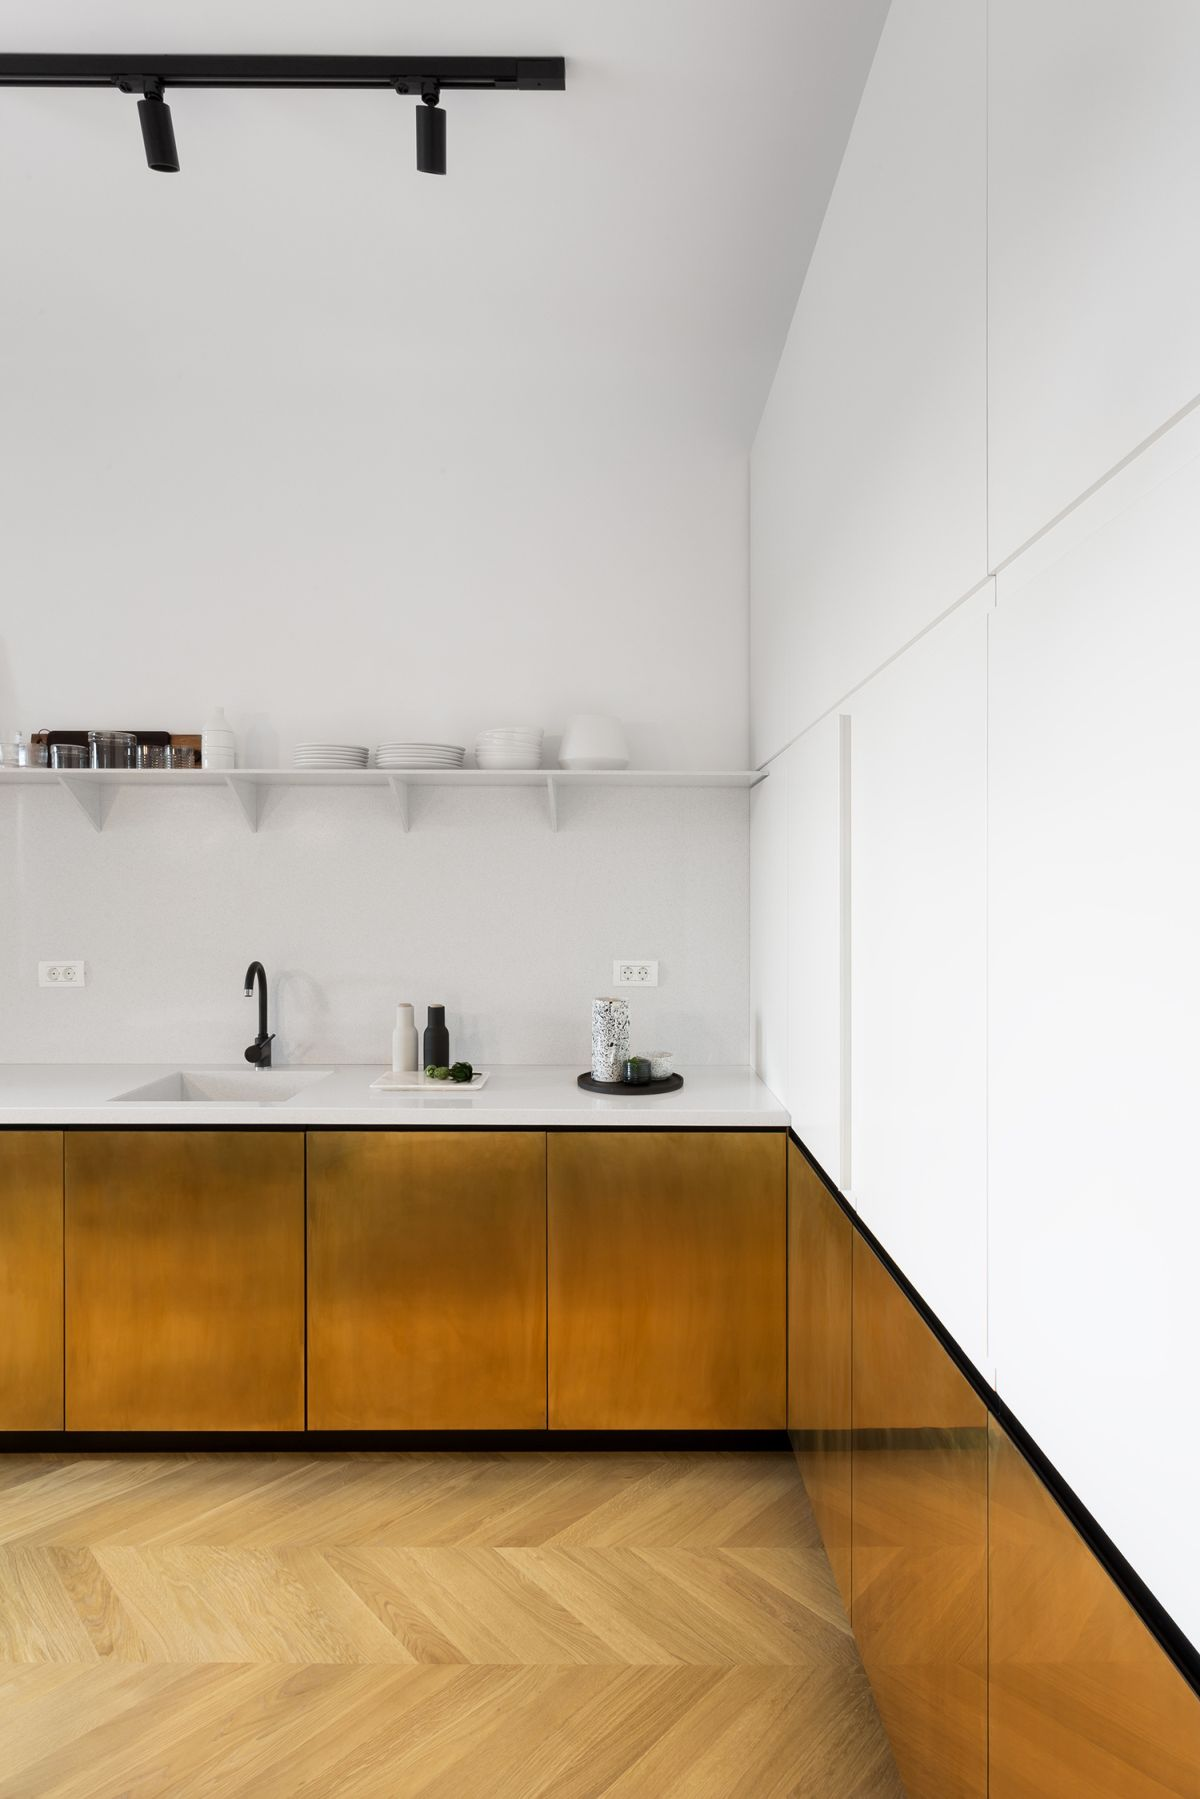 The white countertops, shelves and cabinets in the kitchen seem to disappear into the walls